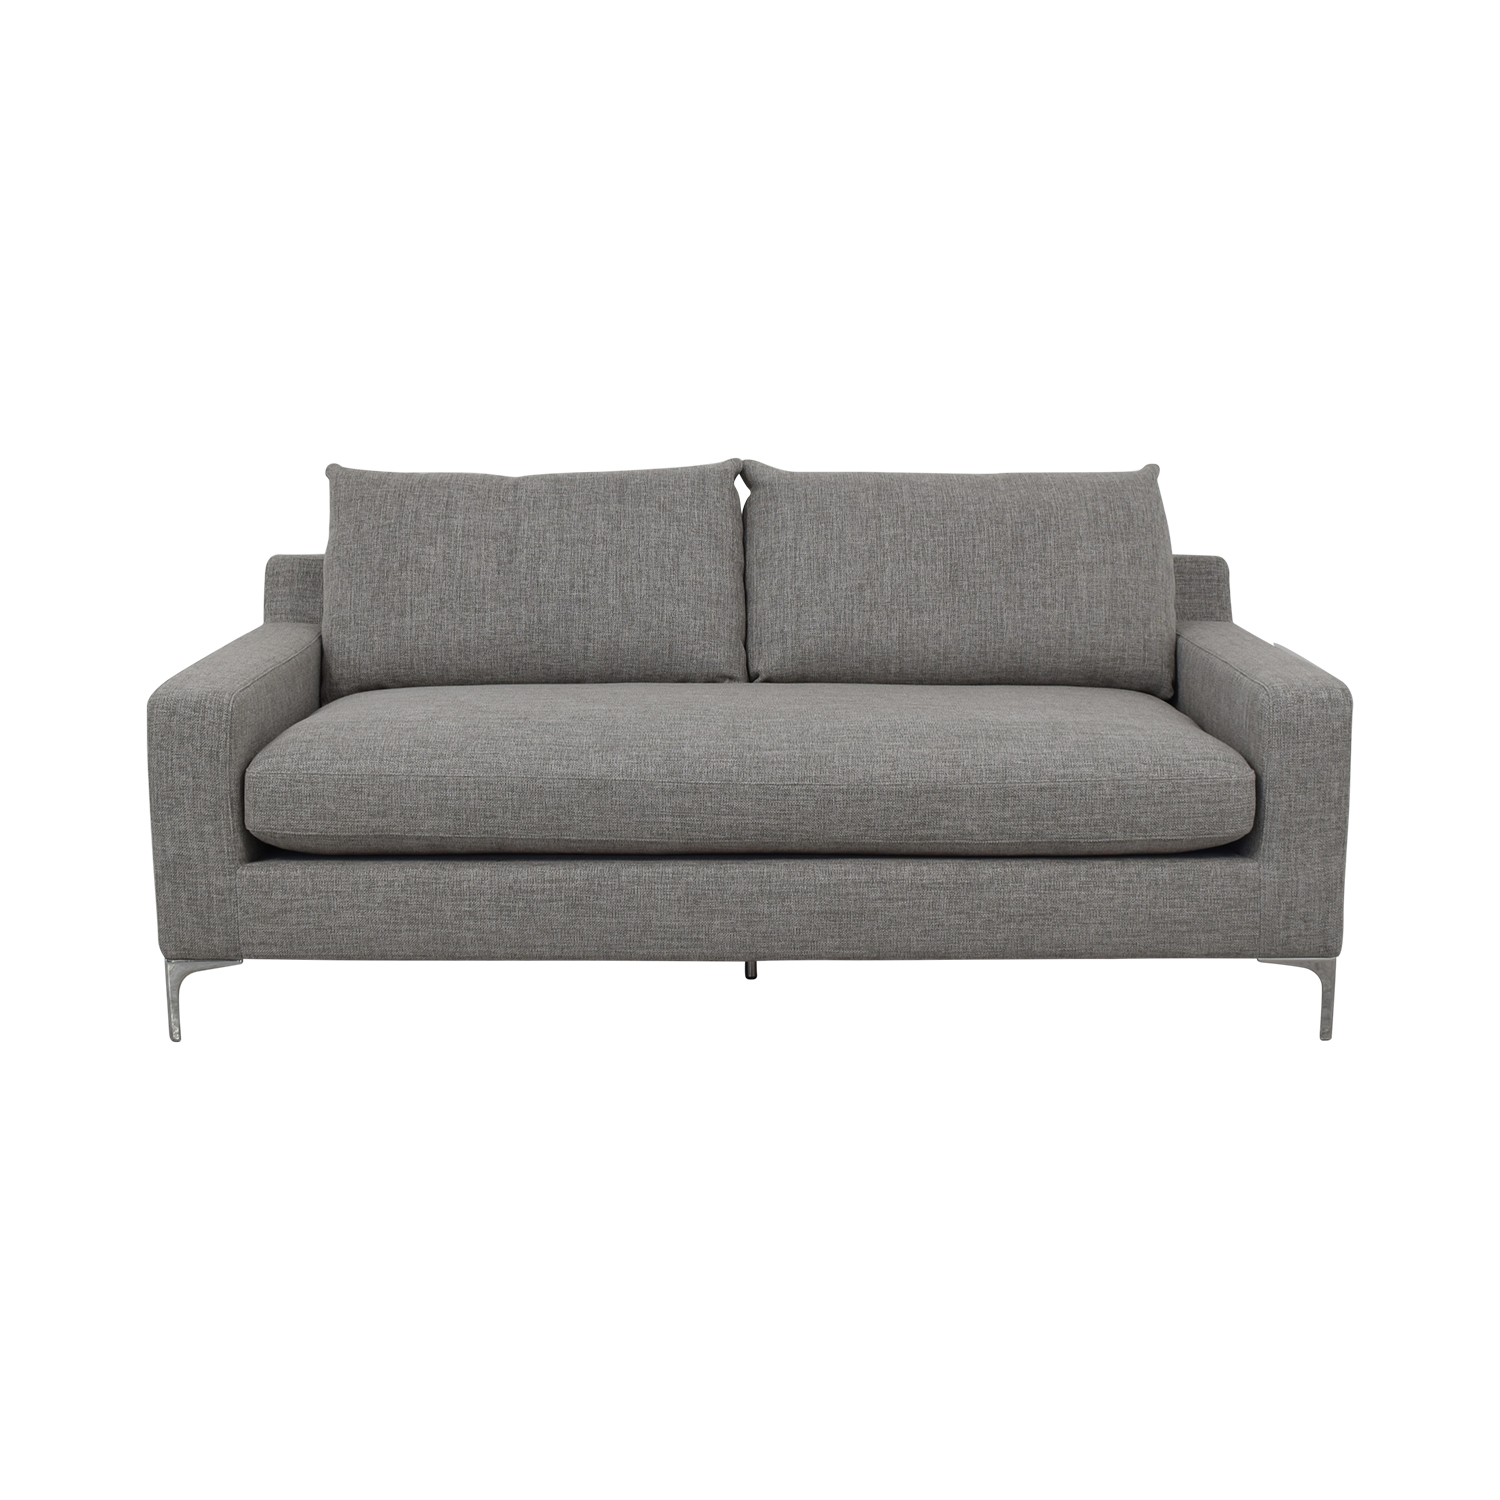 Sloan Single Cushion Sofa Interior Define